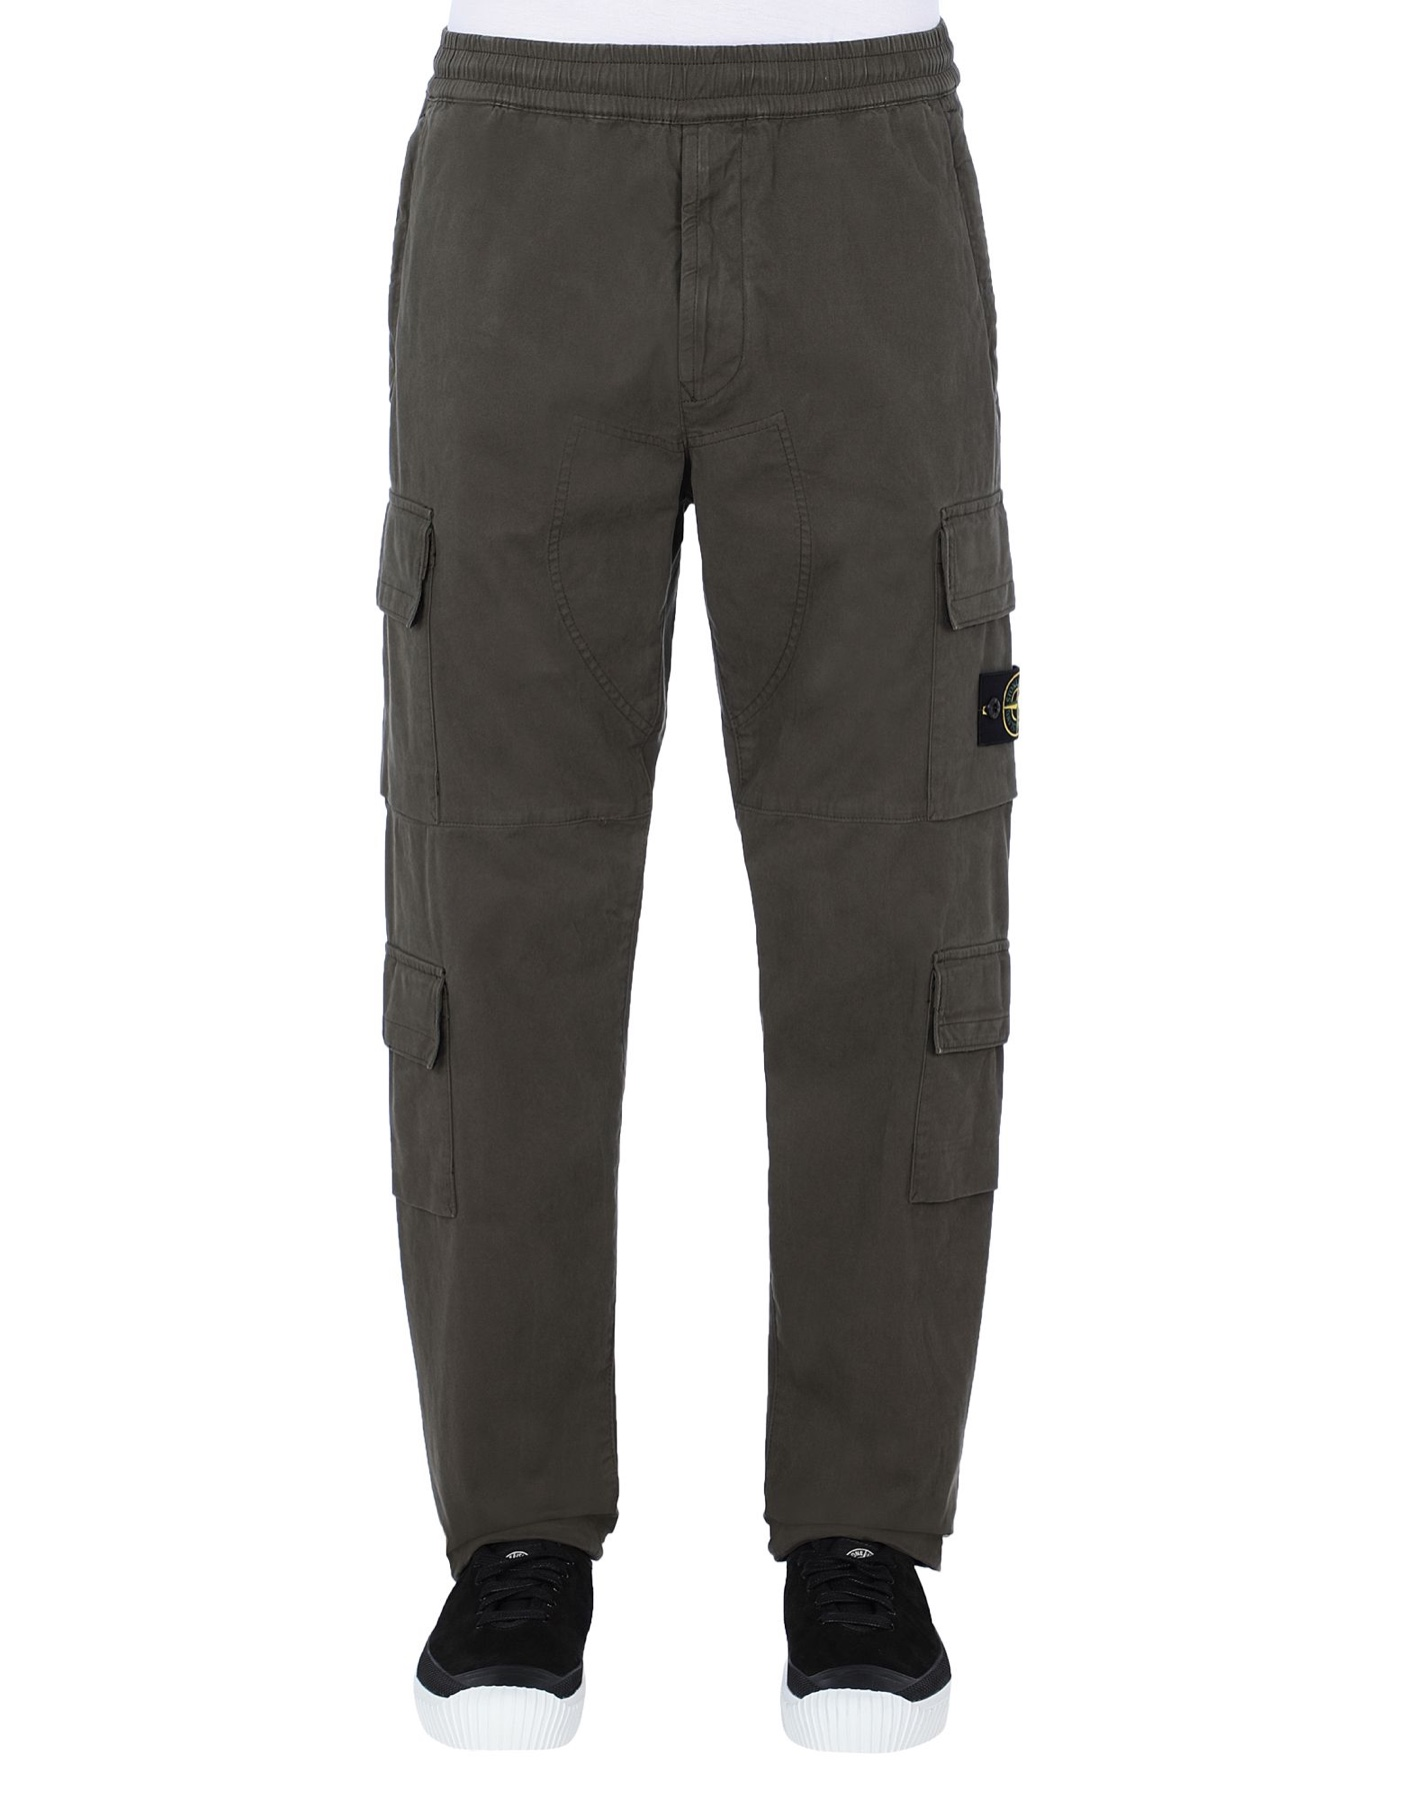 Stone Island 5 pocket pant brown